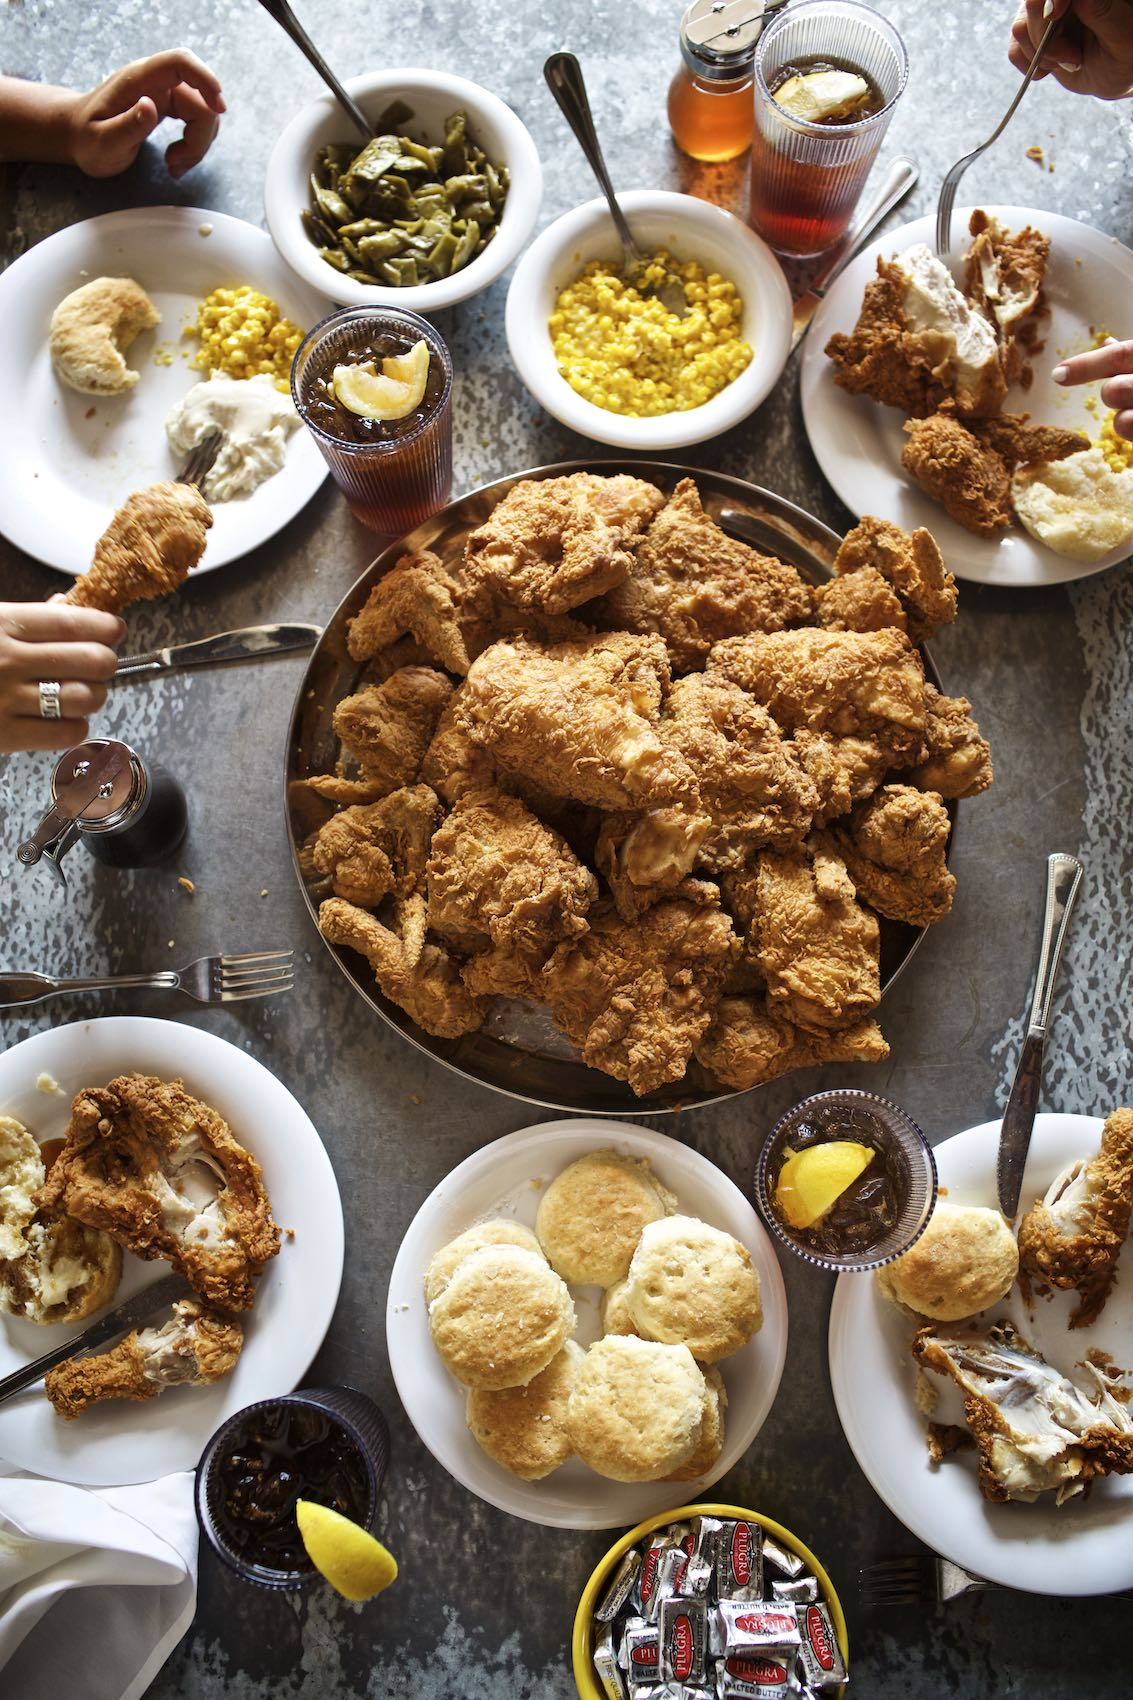 Jody Horton Photography - Fried chicken spread with Southern-style accompaniments.